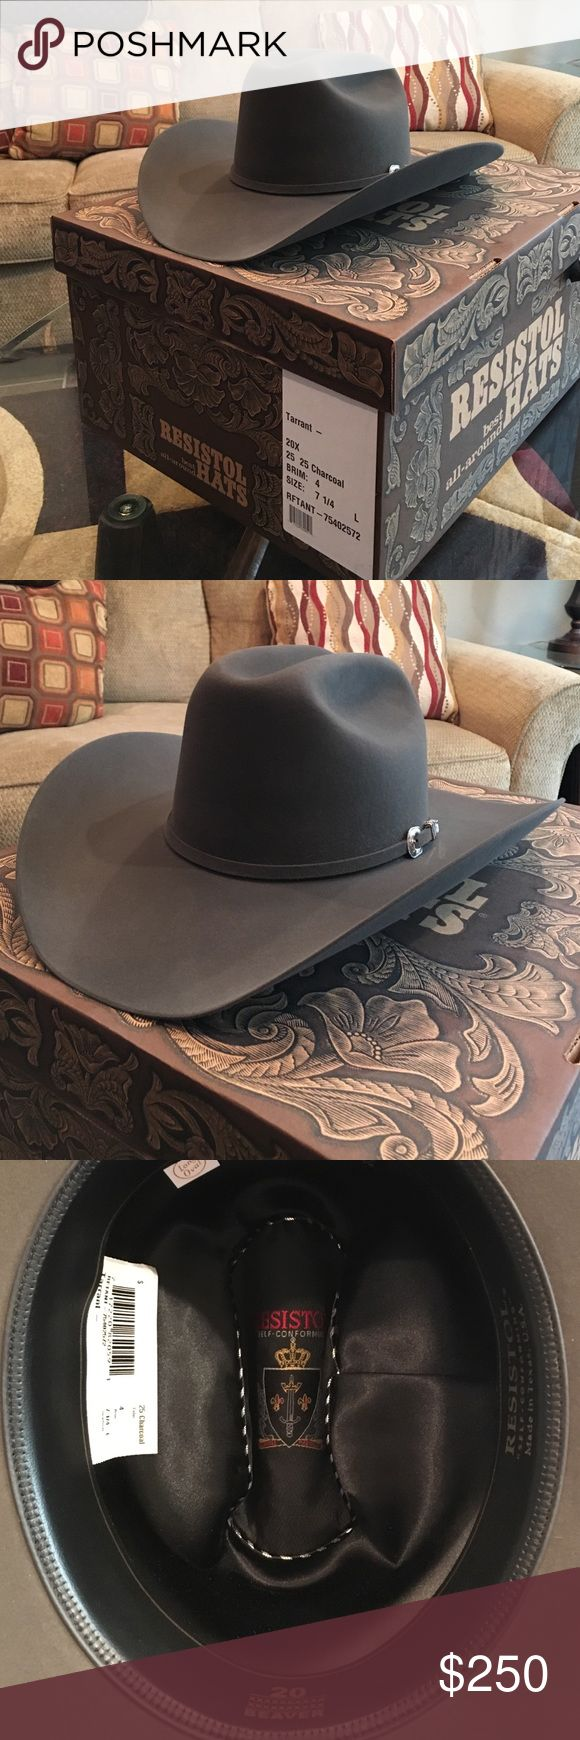 20x beaver Resistol cowboy hat New in the box! Never worn and only the second time it's come out of the box (for picture). Great deal on a new hat. Great charcoal color is unique and ready for winter styling. Resistol Other